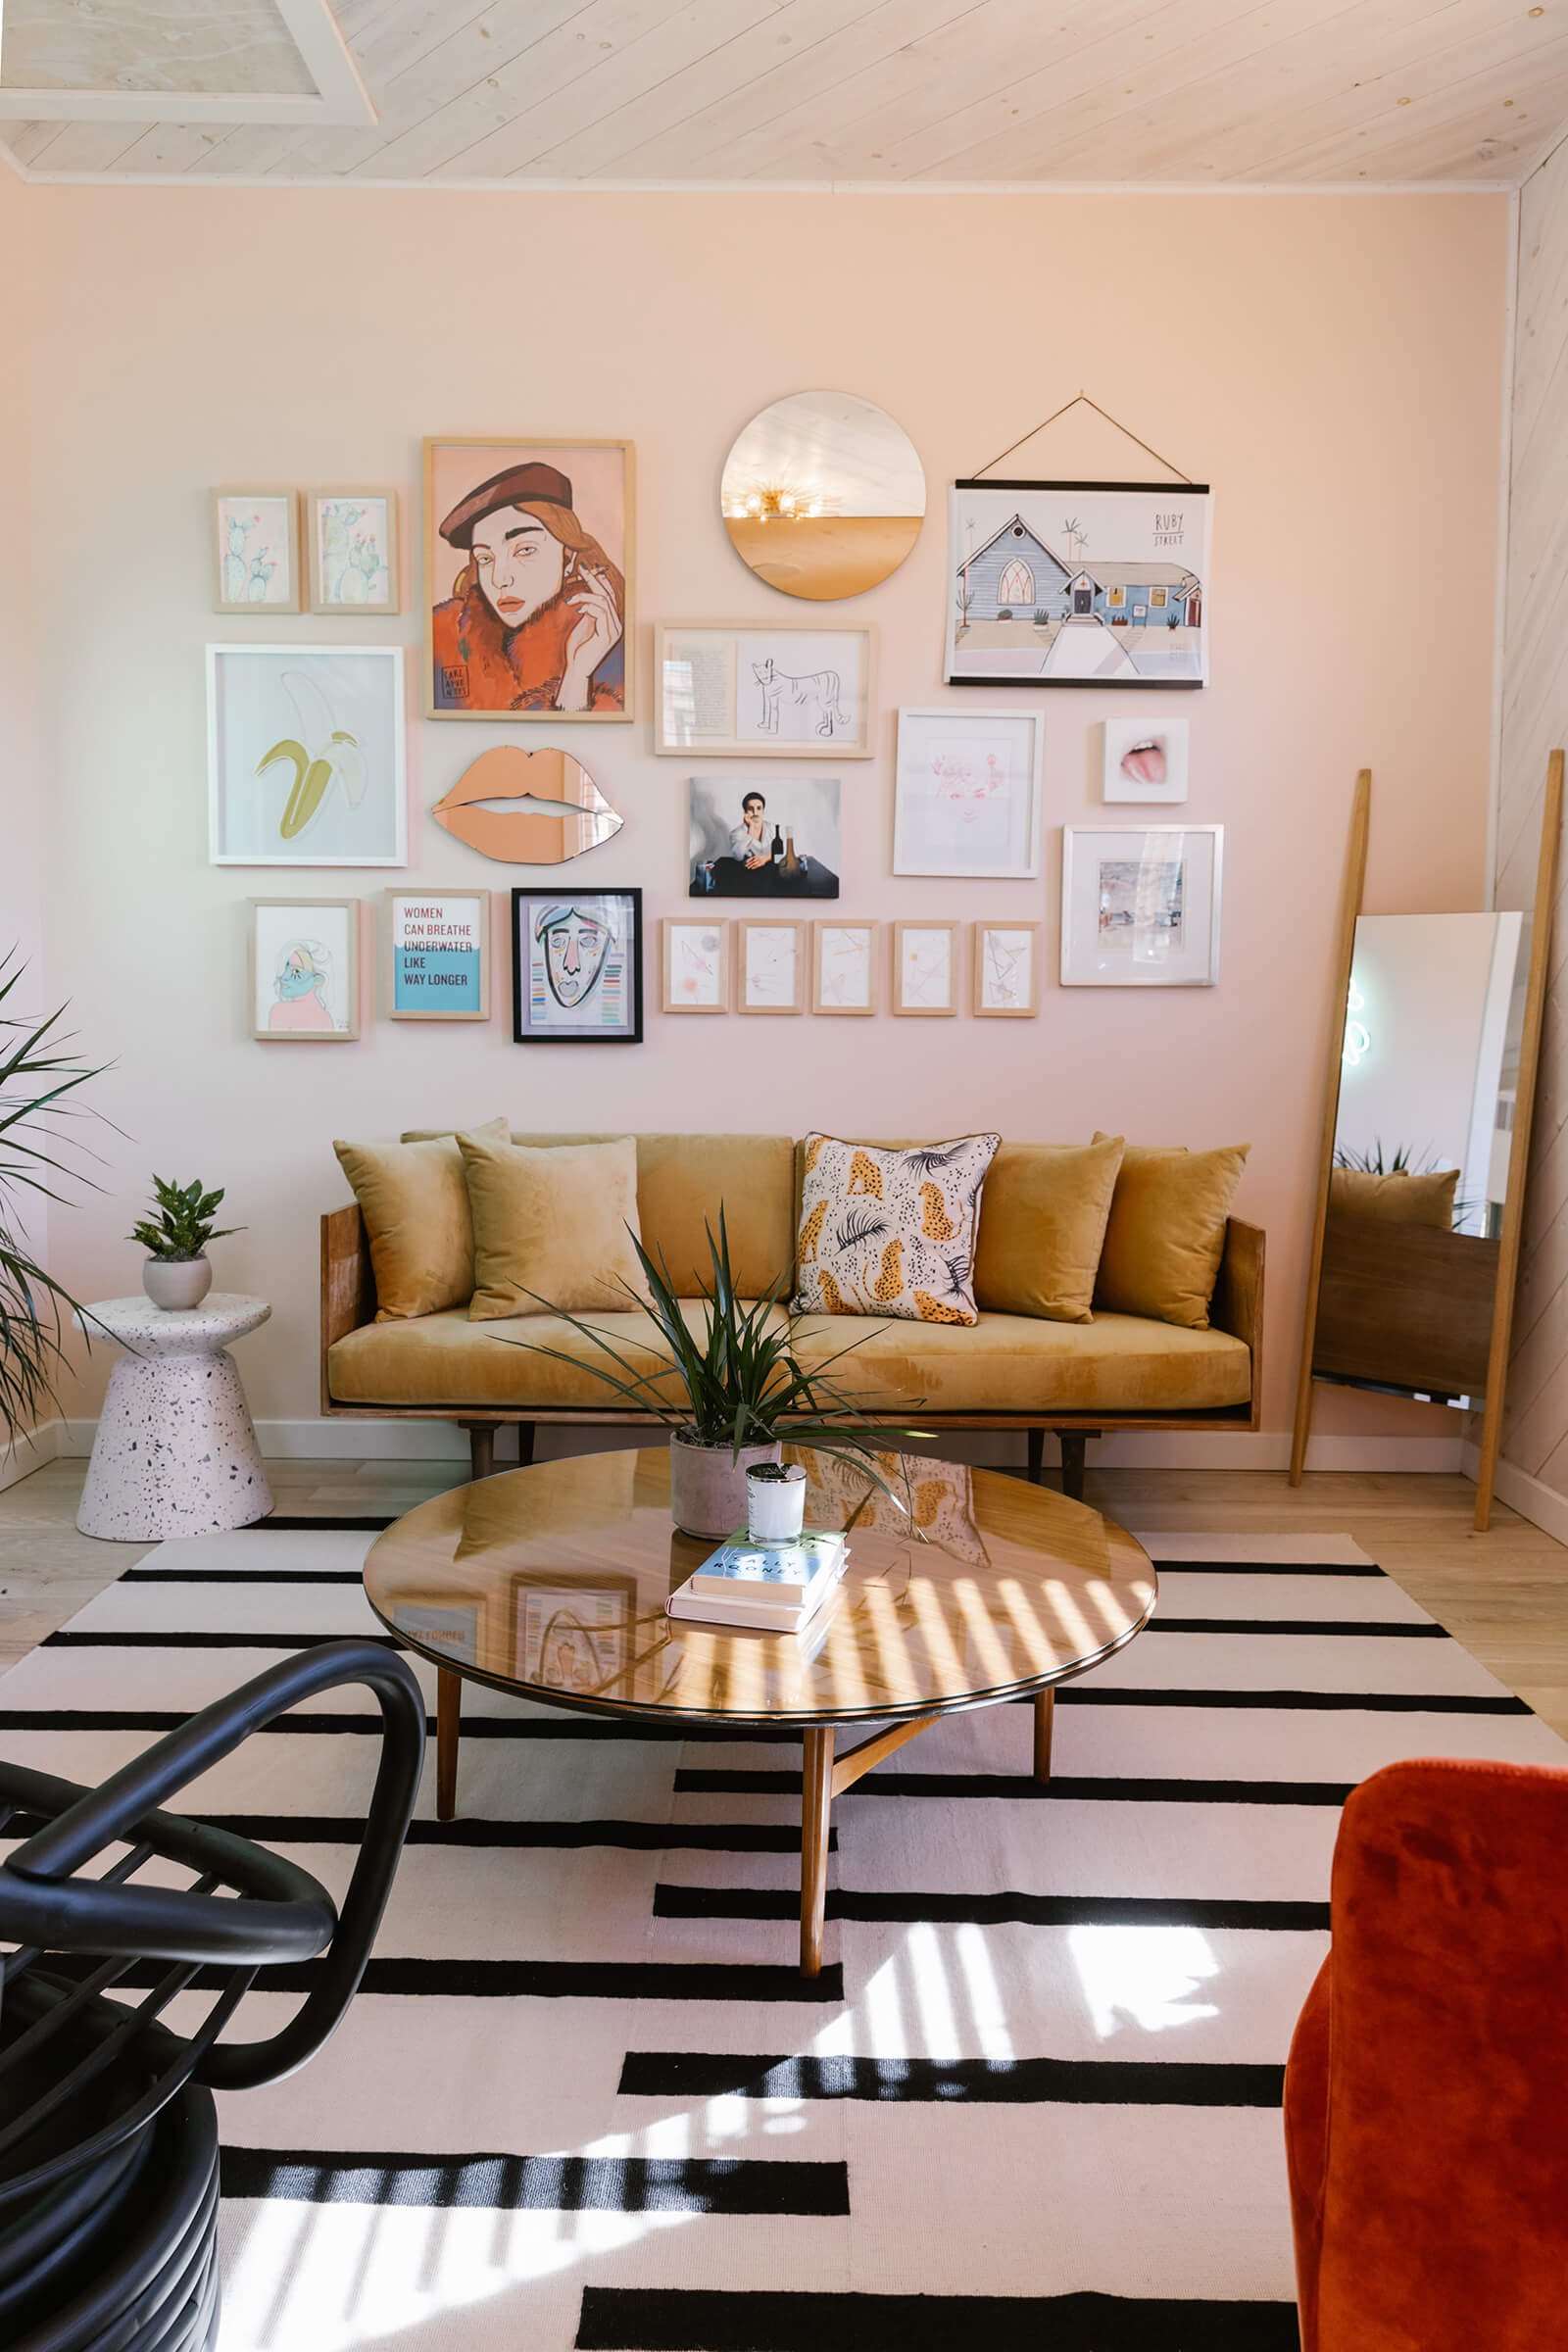 Furniture atop Danish rugs, overlooked by art on the wall | The Ruby Street in LA is a coworking space by Working Holiday Studio and Francesca De La Fuente | STIRworld